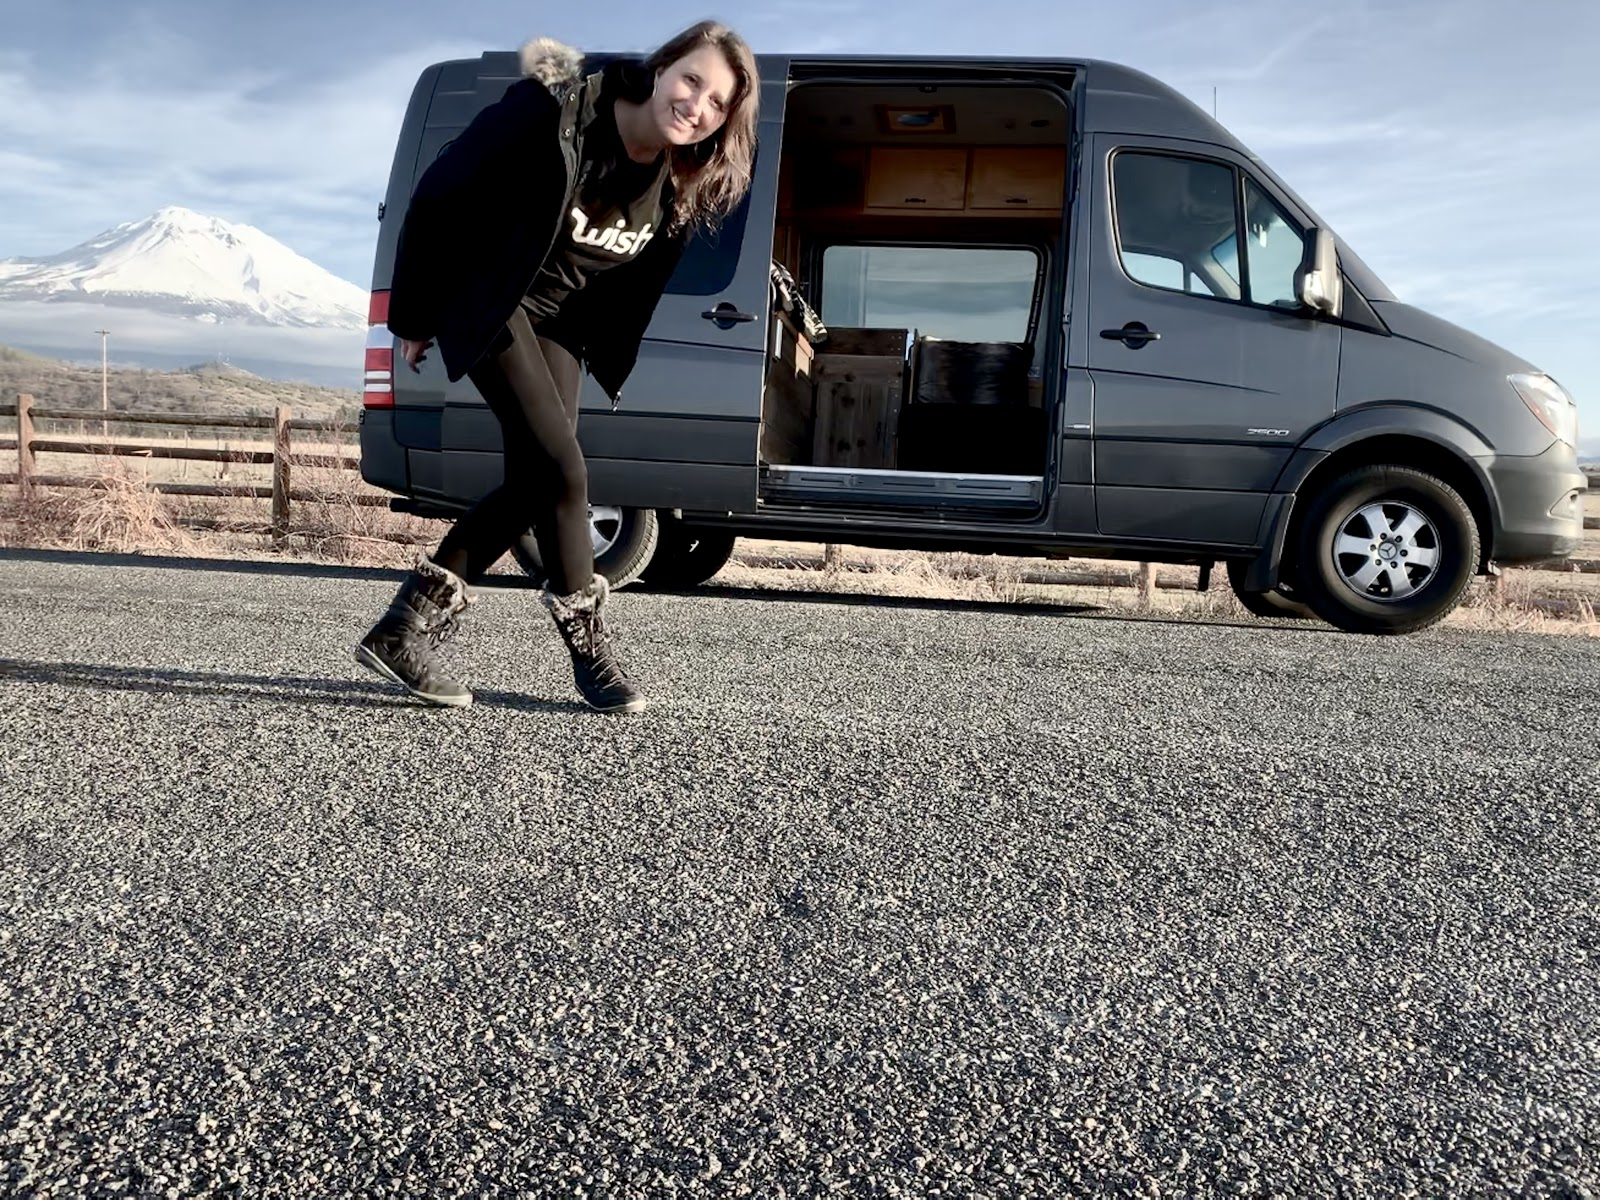 adventure, exploring, mountains, parks, life, van life